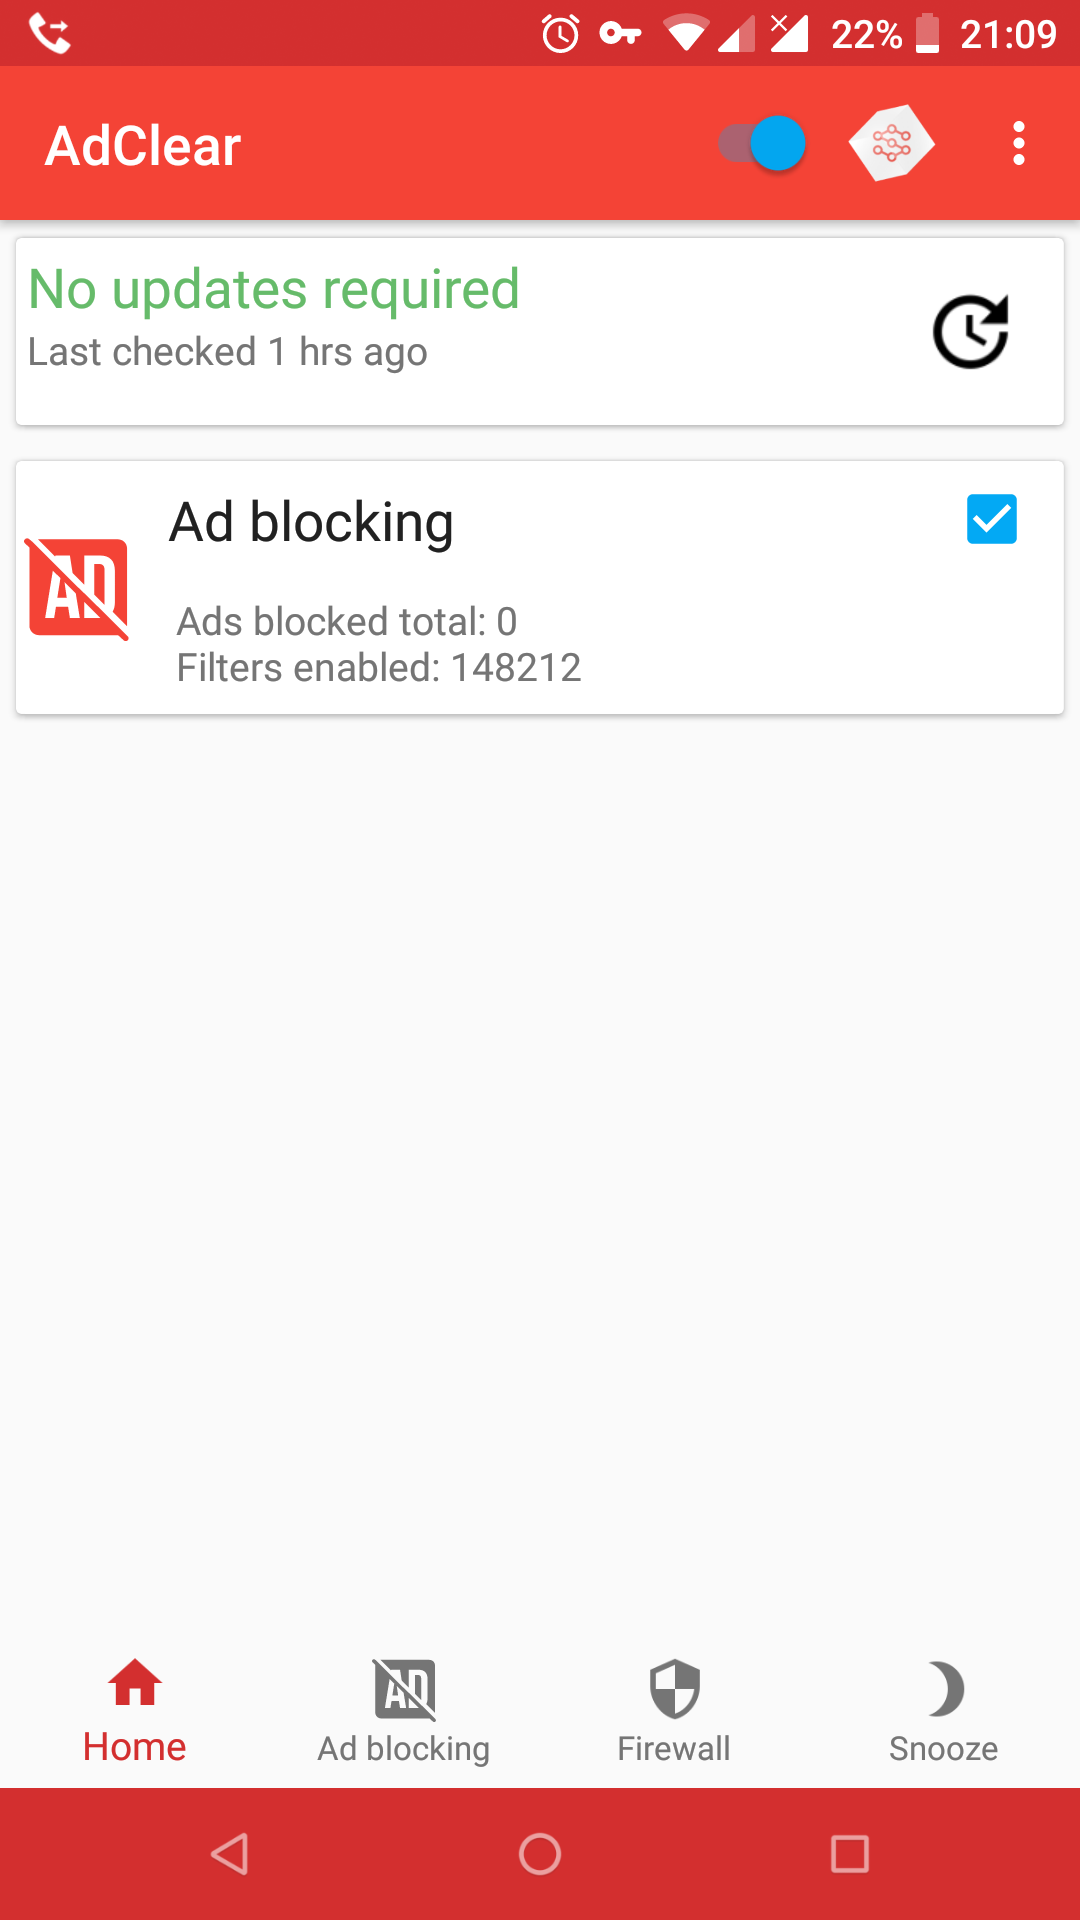 Not blocking in LineageOS 15 1 - Ad Blocking - AdClear by Seven Networks